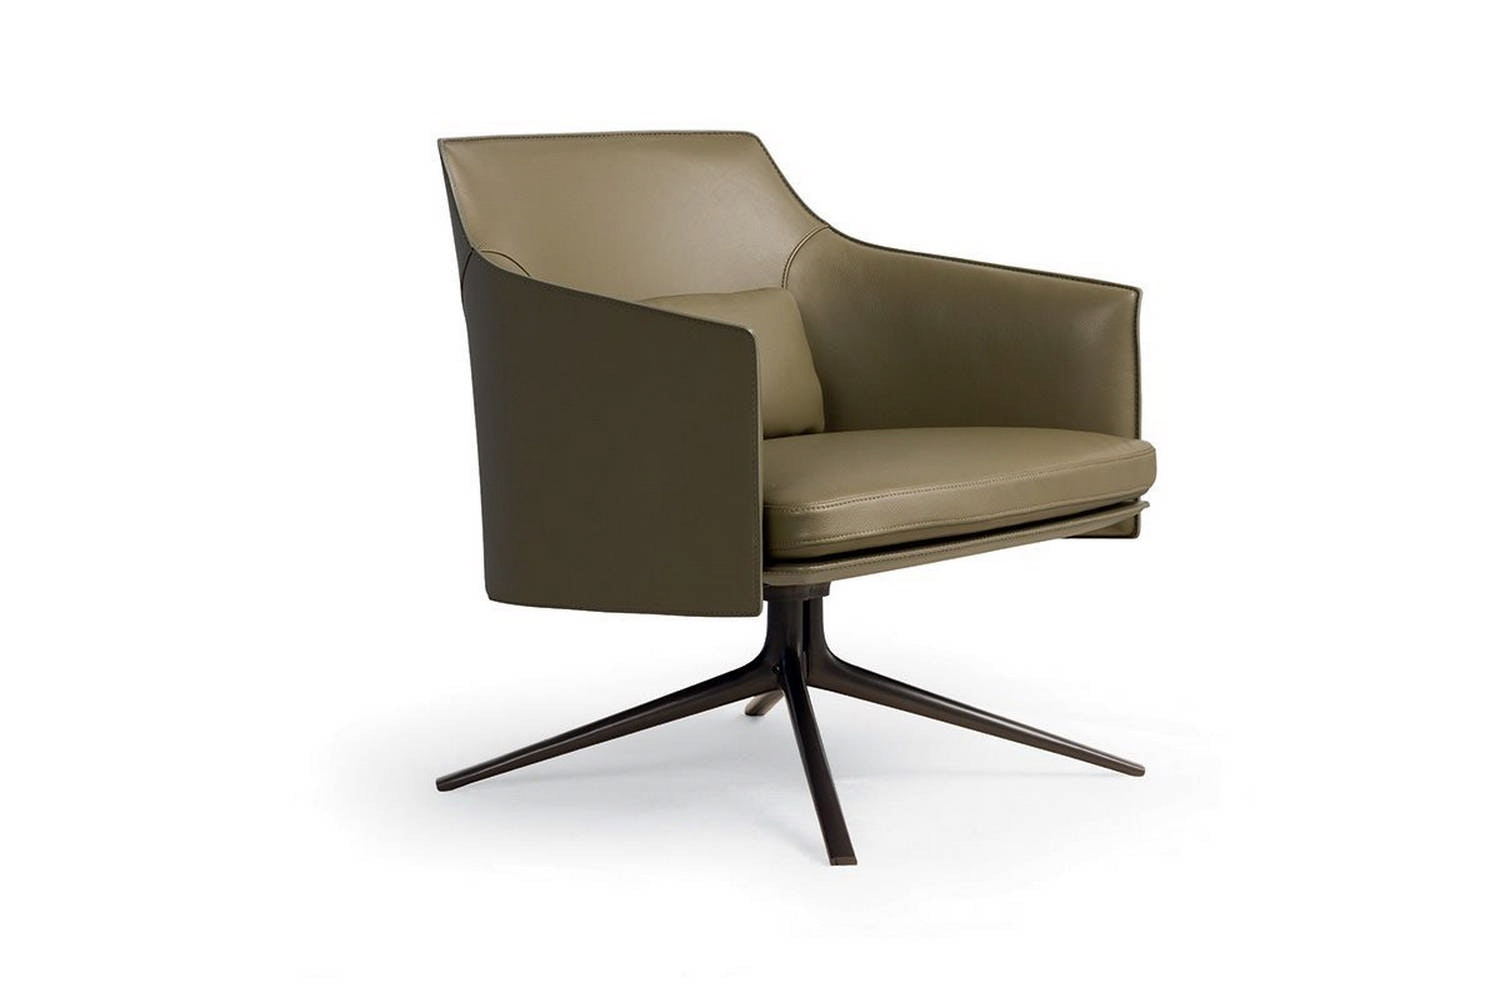 Stanford Armchair by Jean-Marie Massaud for Poliform